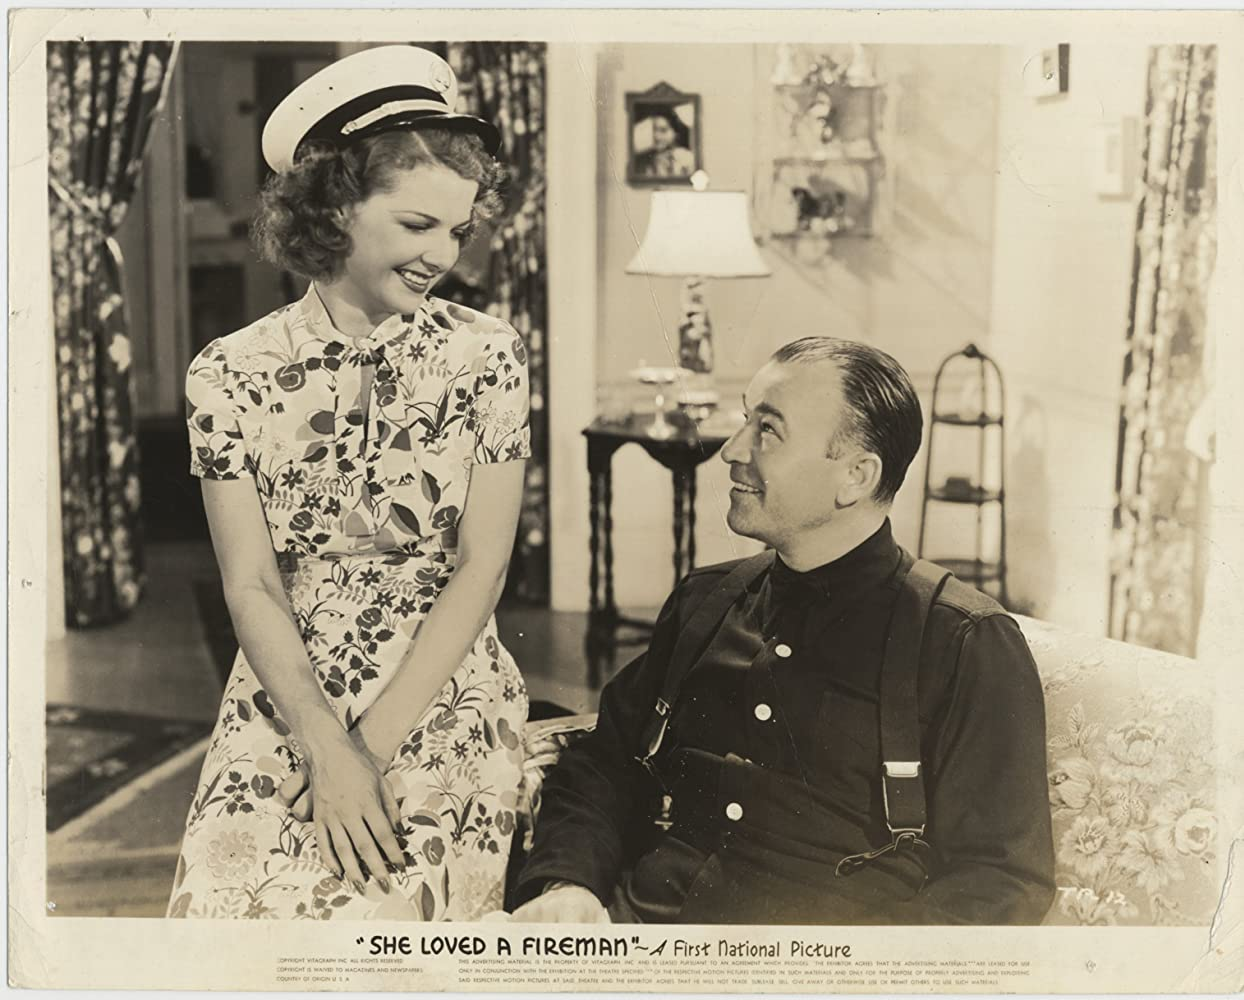 Robert Armstrong and Ann Sheridan in She Loved a Fireman (1937)